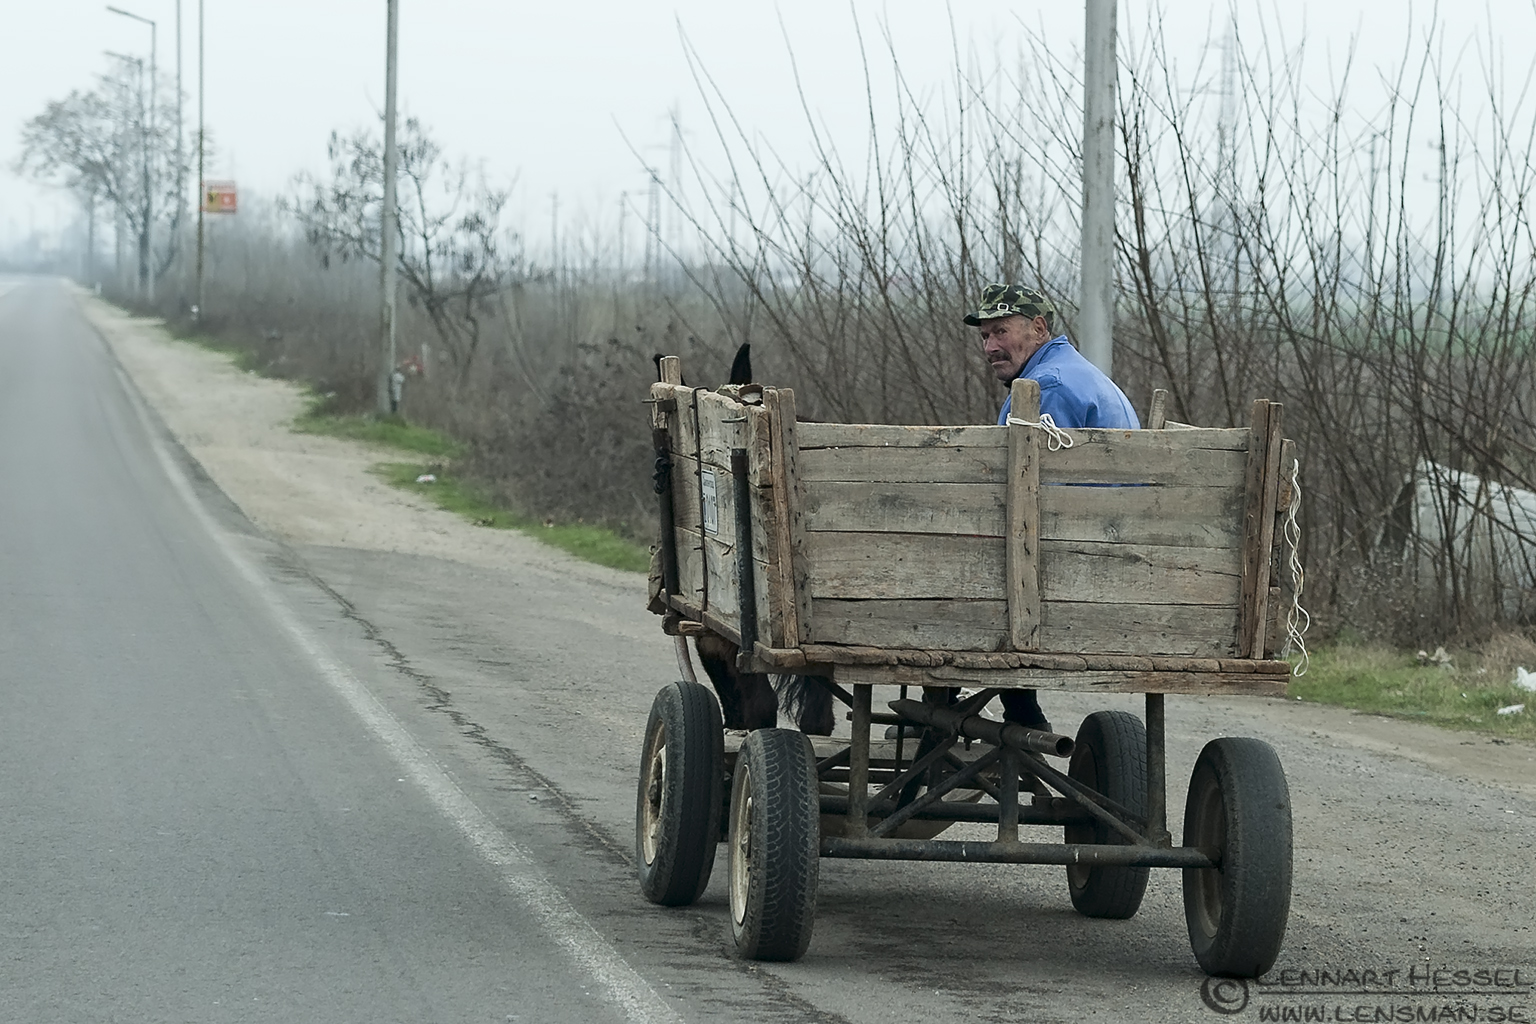 The cart Bulgaria